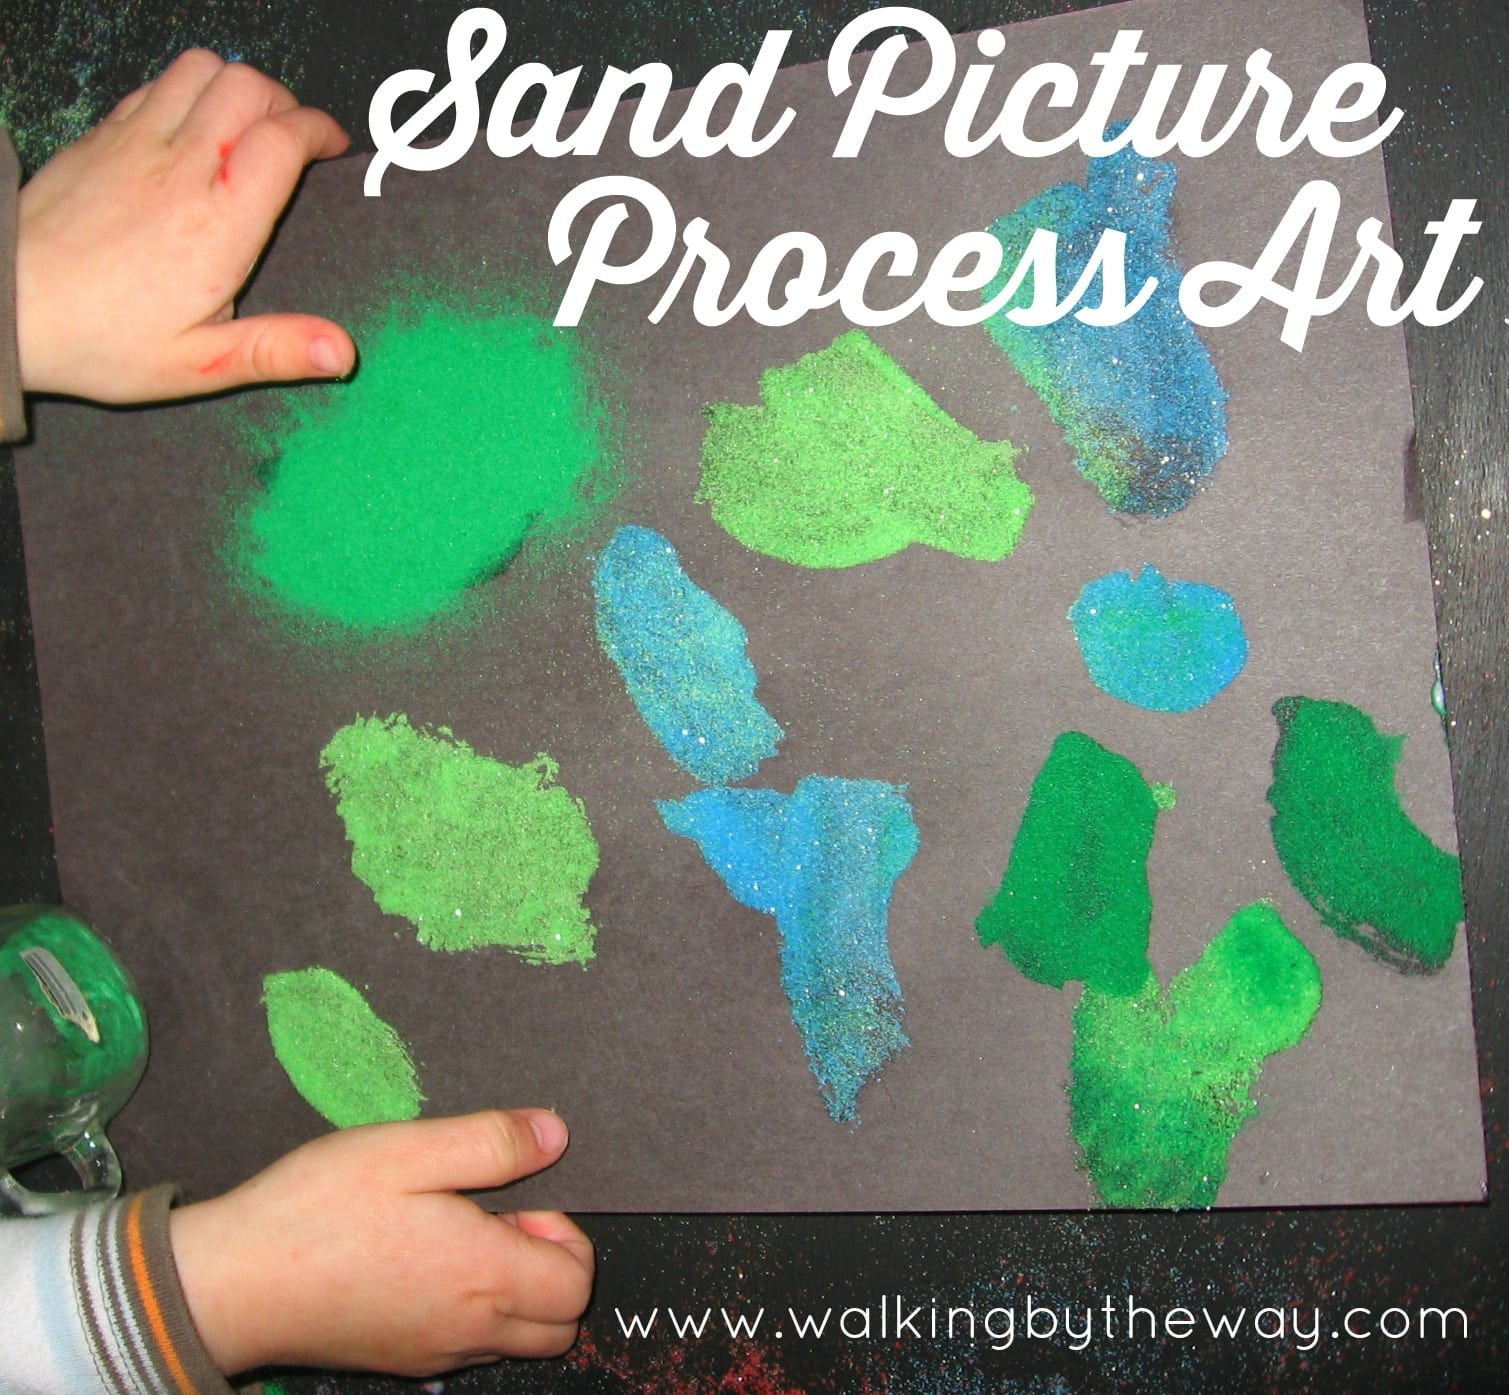 Sand Picture Process Art for toddlers and preschoolers from Walking by the Way